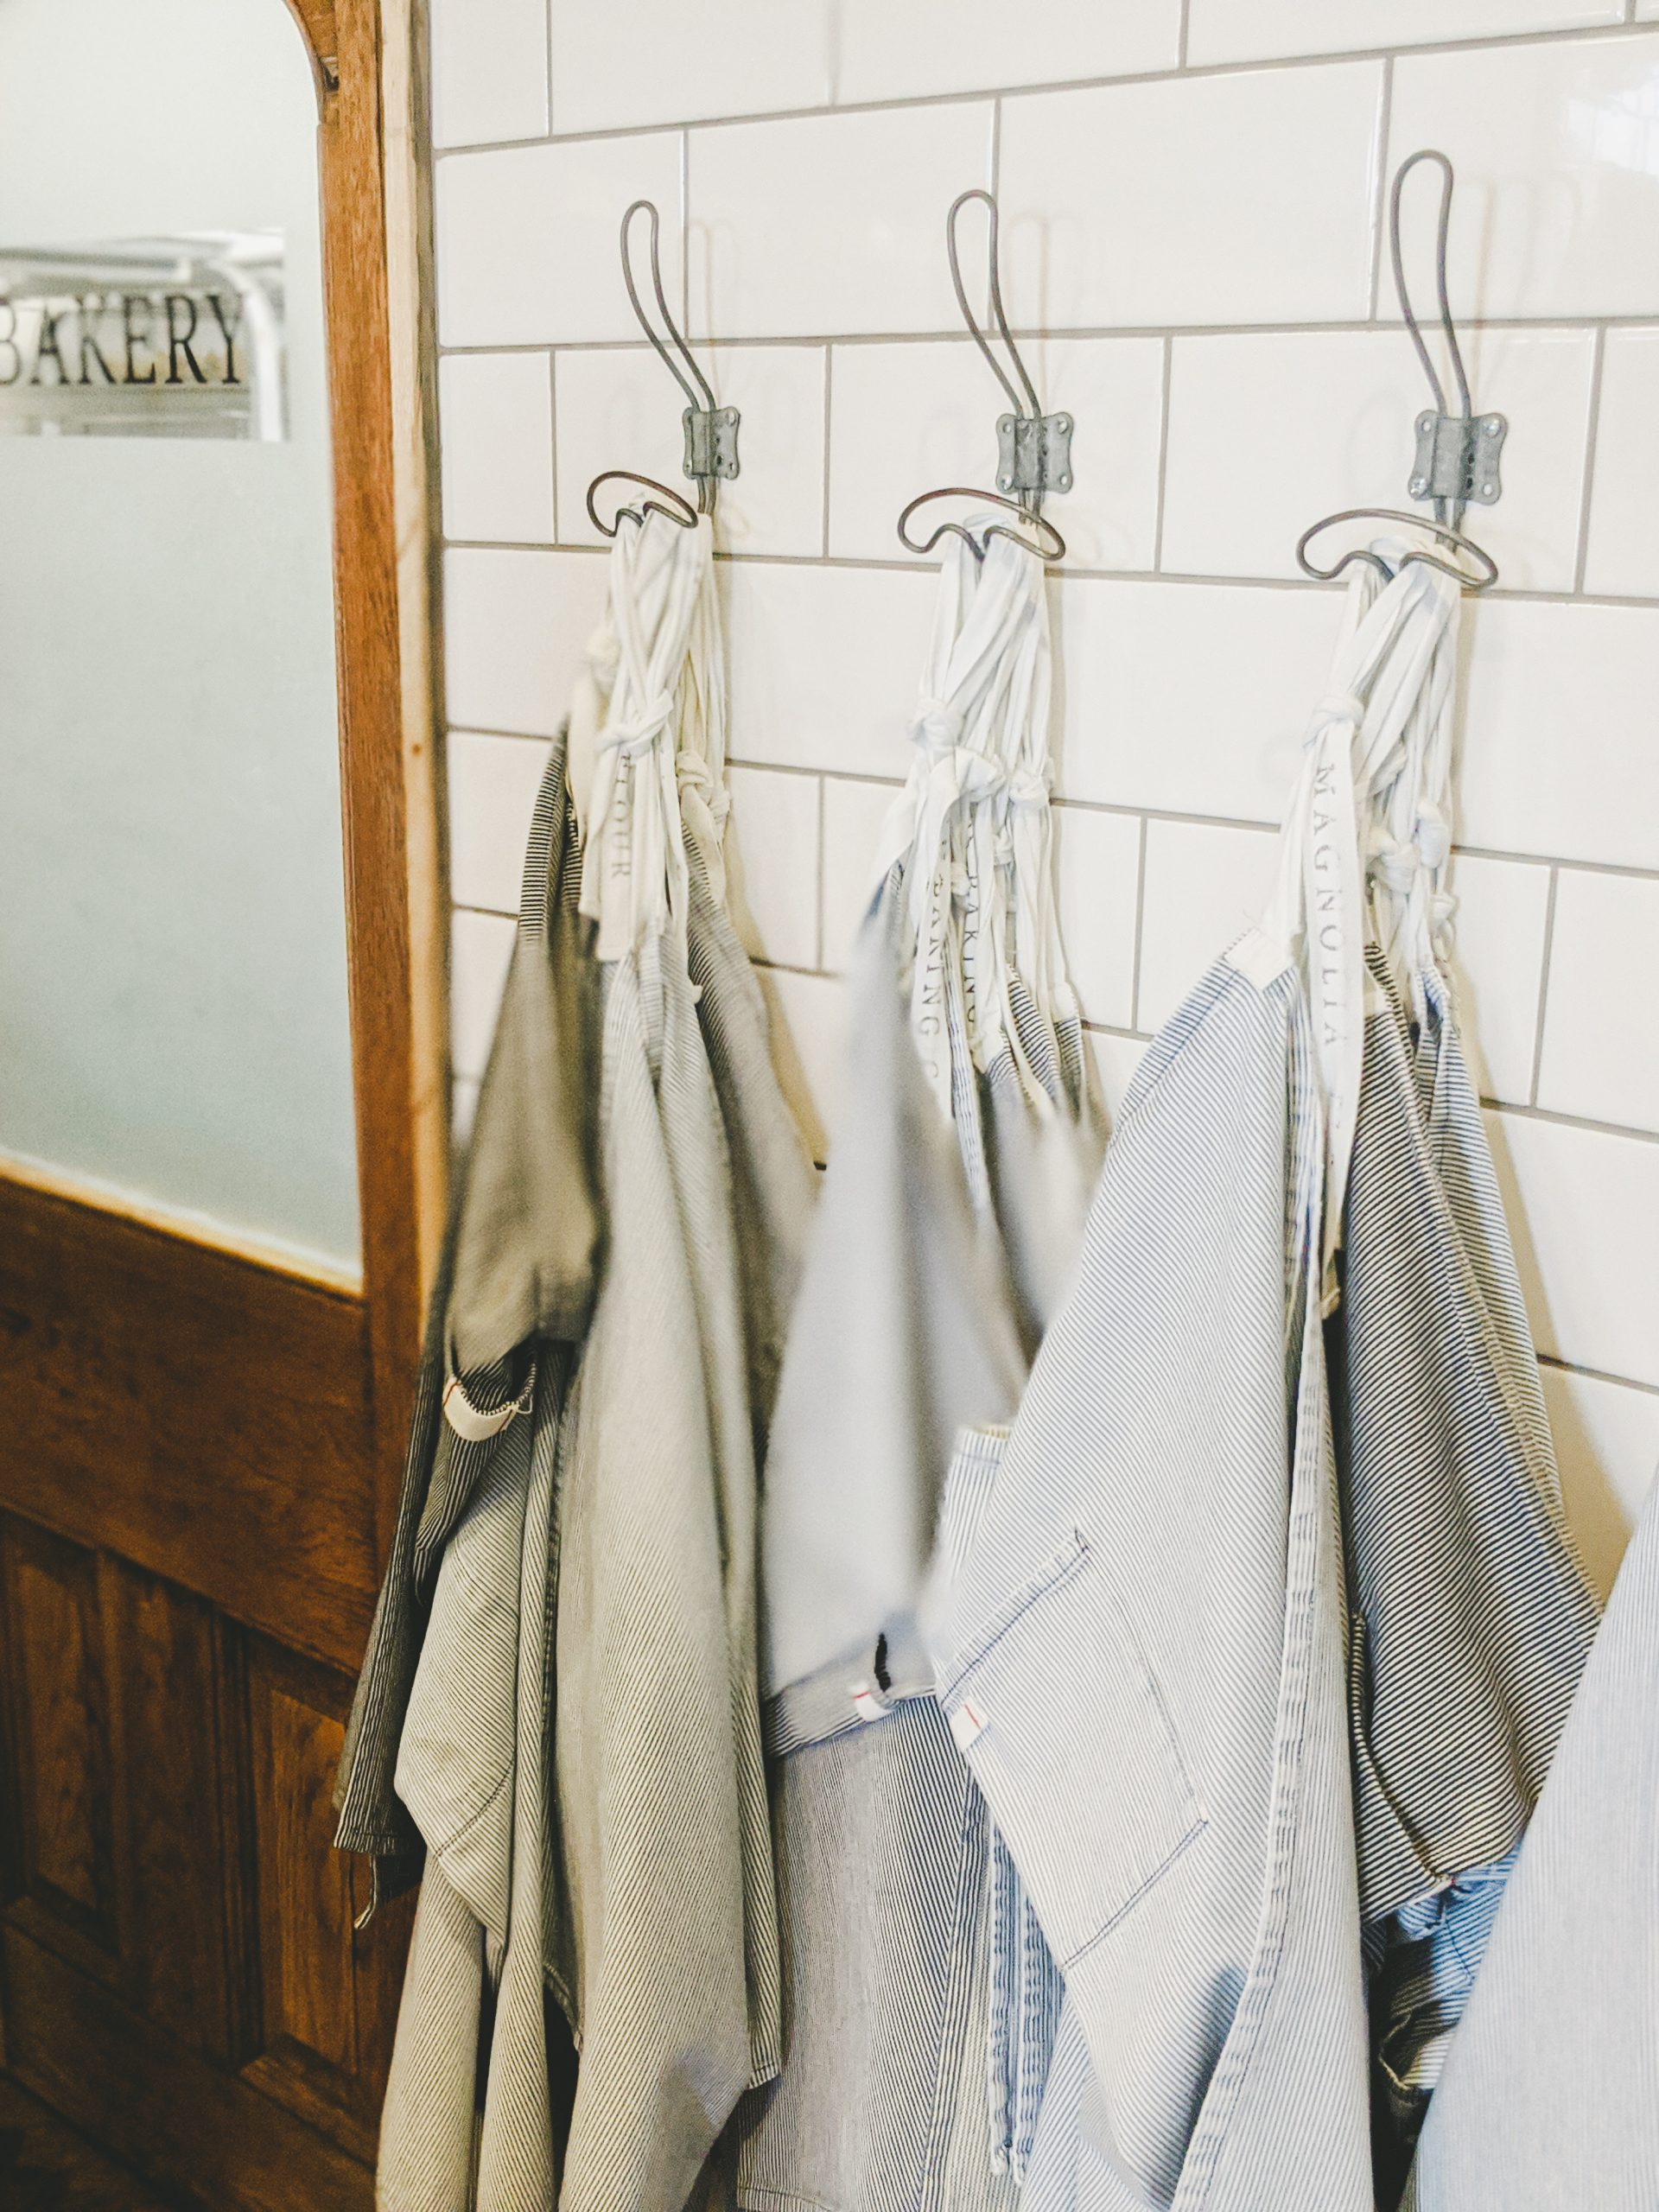 silos baking co. aprons